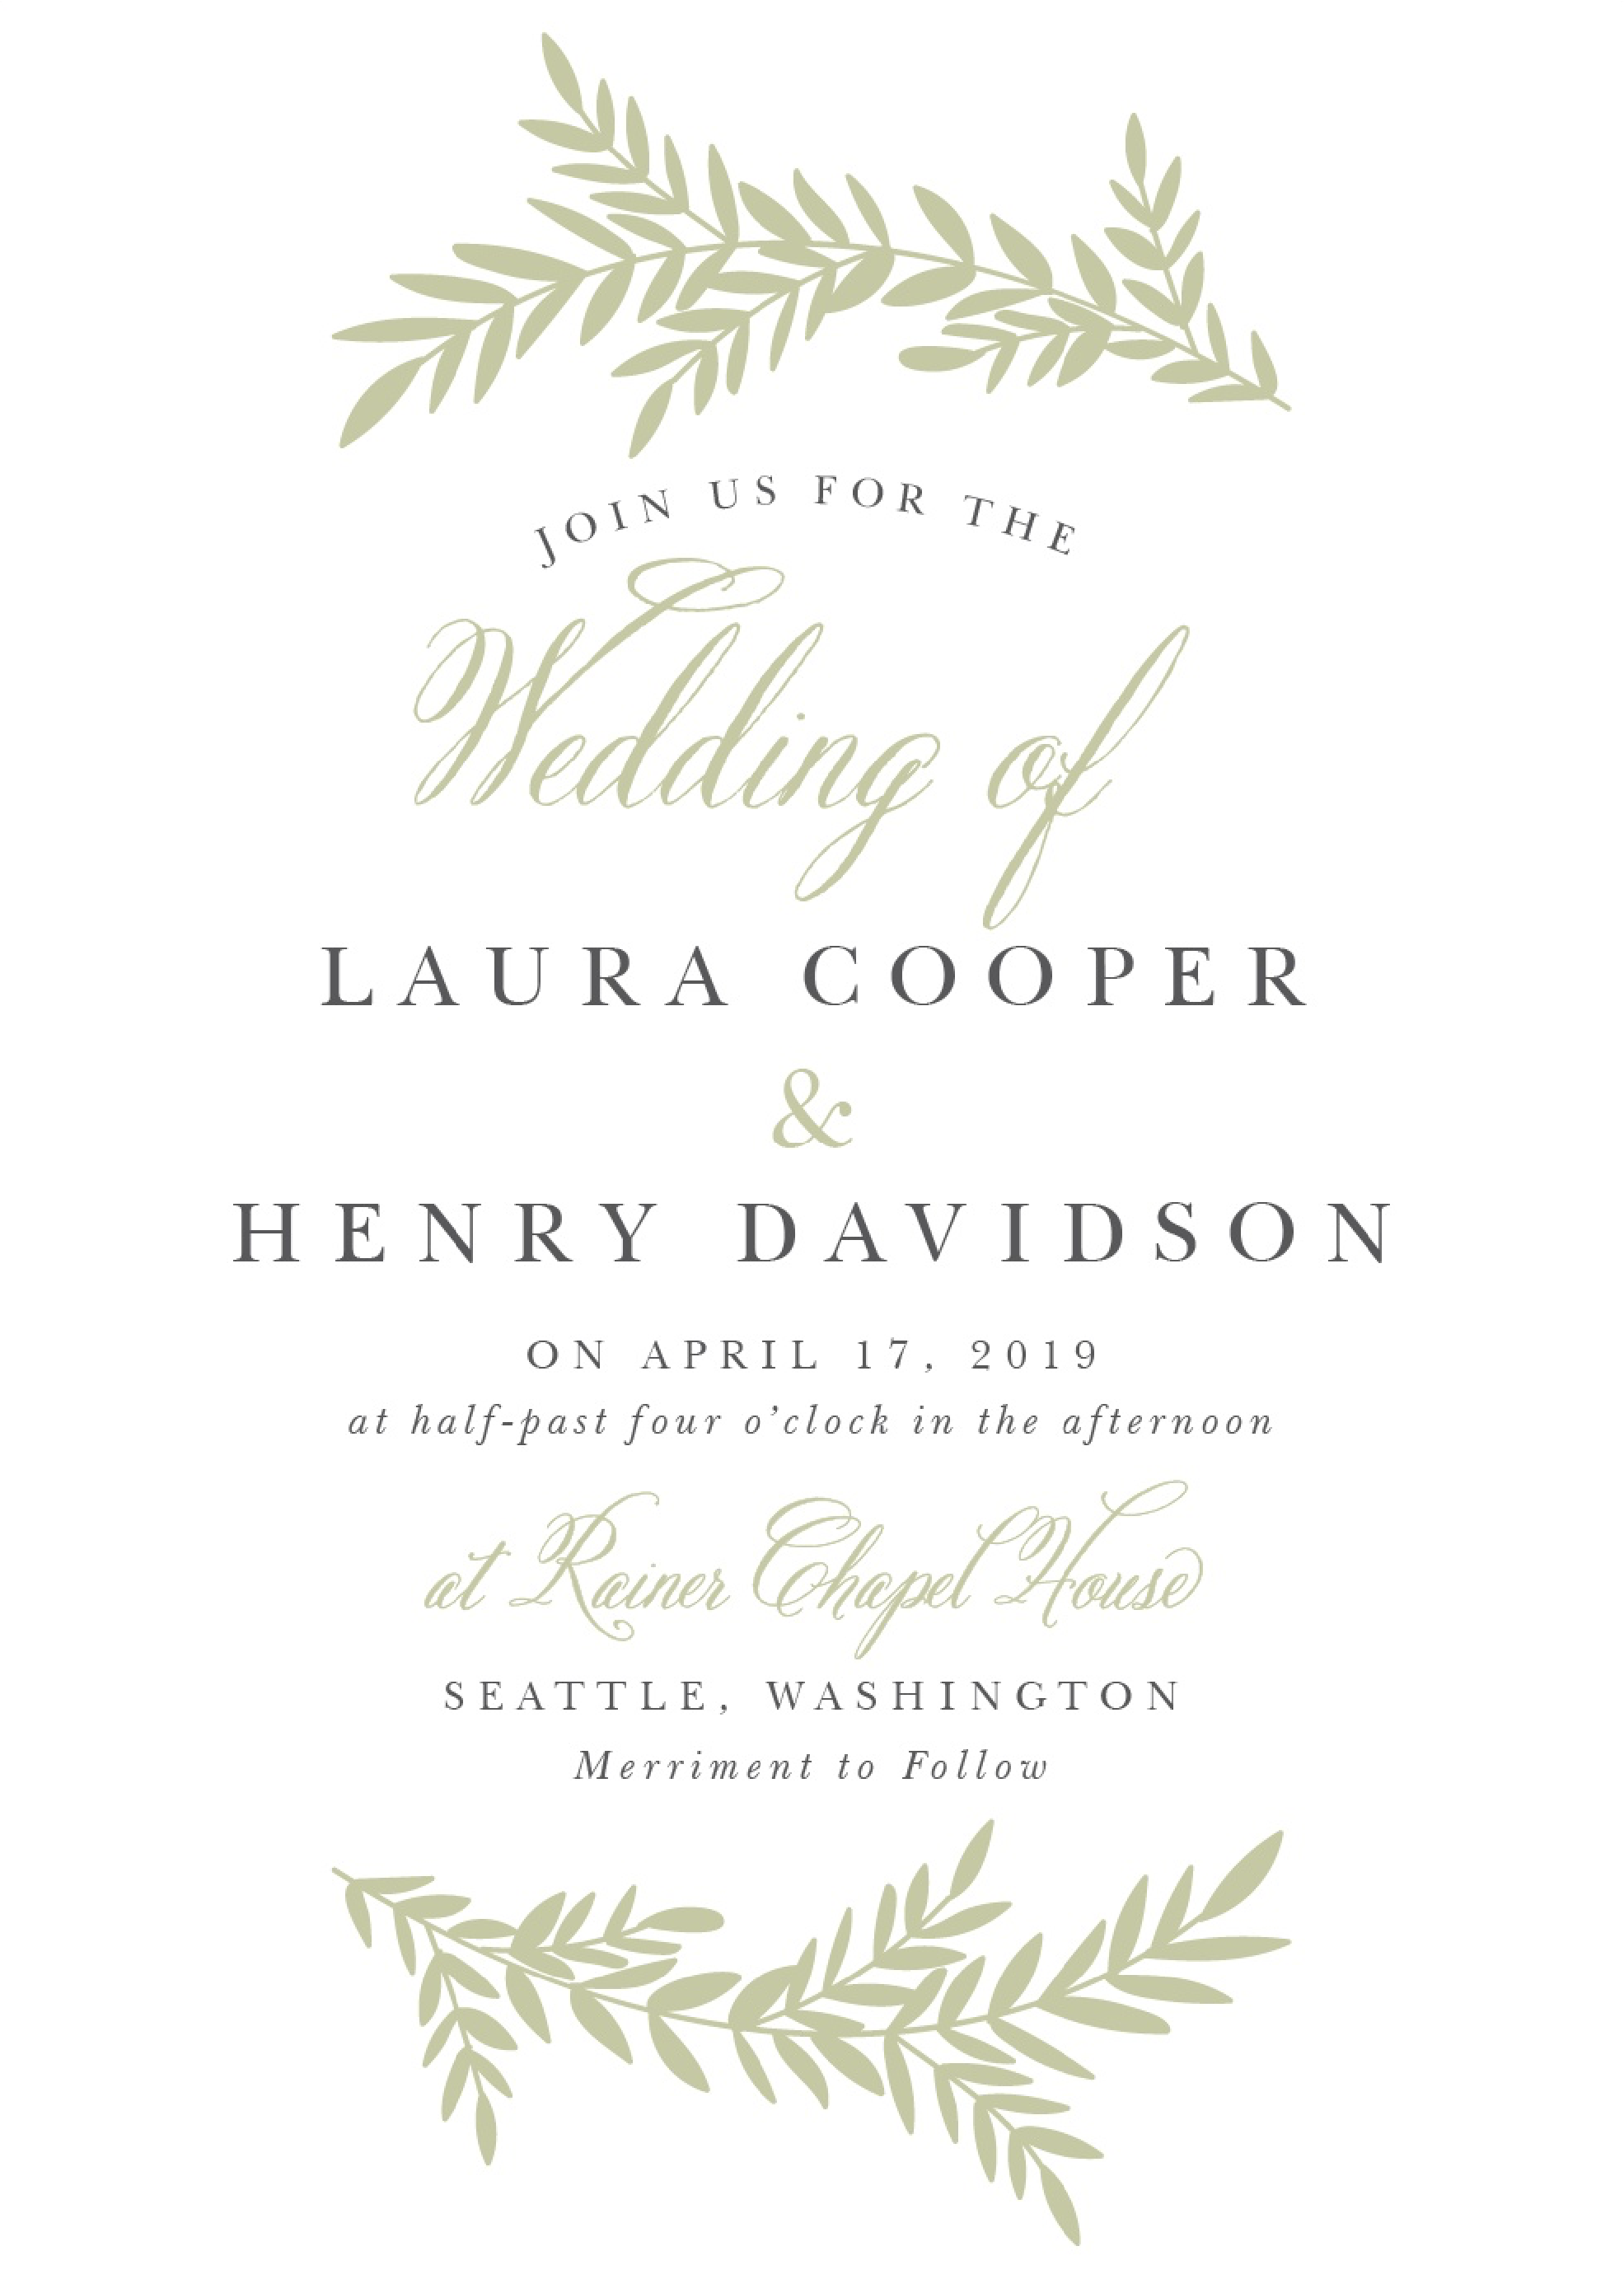 4 Creative Invitation Card Other Words With Stunning Design with